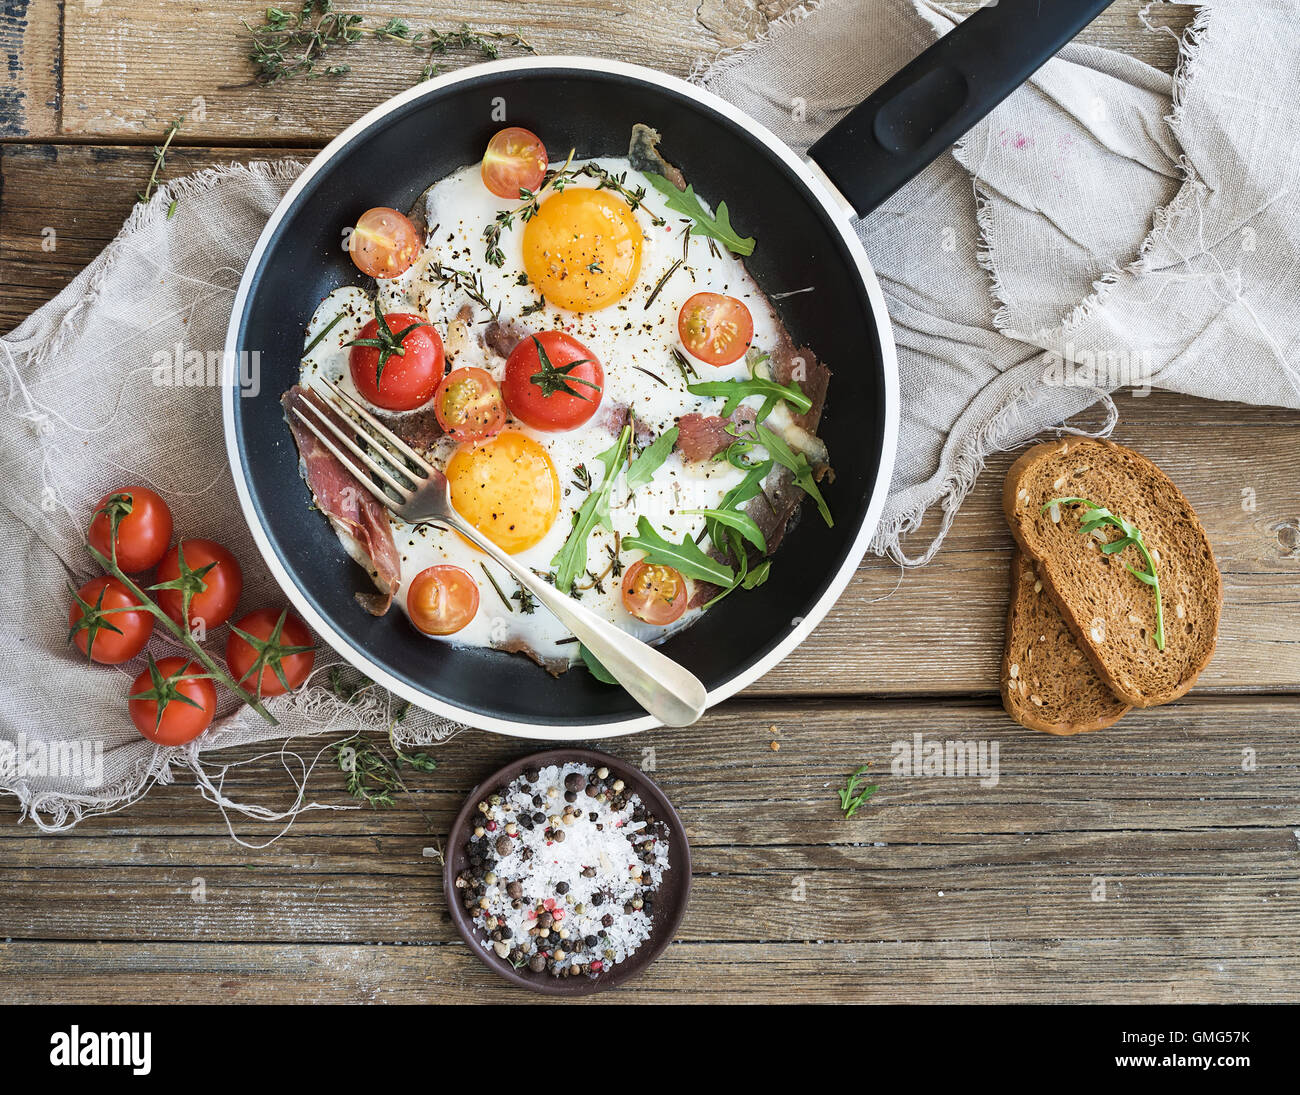 Pan of fried eggs, bacon and cherry-tomatoes with bread - Stock Image